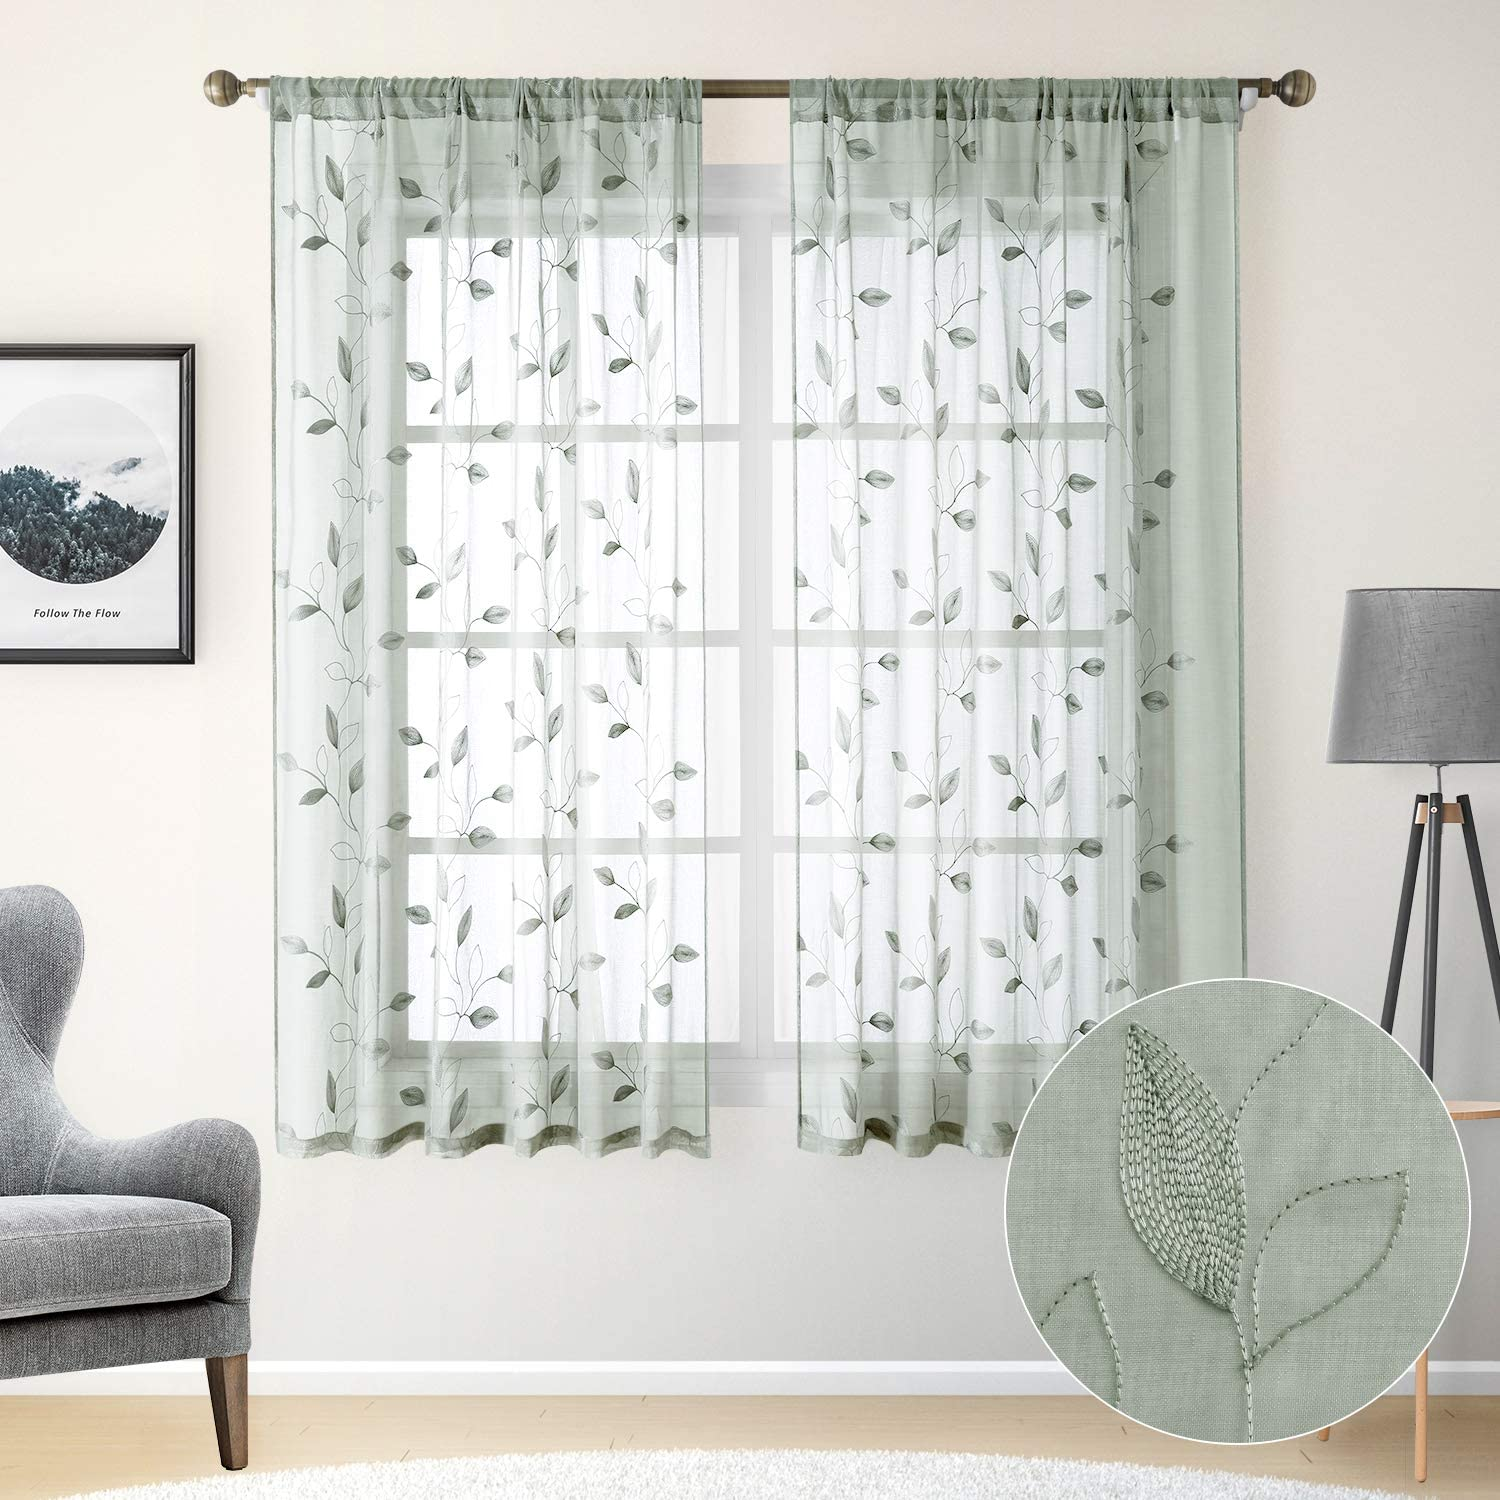 HOMEIDEAS Sage Green Sheer Curtains 52 X 63 Inches Length 2 Panels Embroidered Leaf Pattern Pocket Faux Linen Floral Semi Sheer Voile Window Curtains/Drapes for Bedroom Living Room